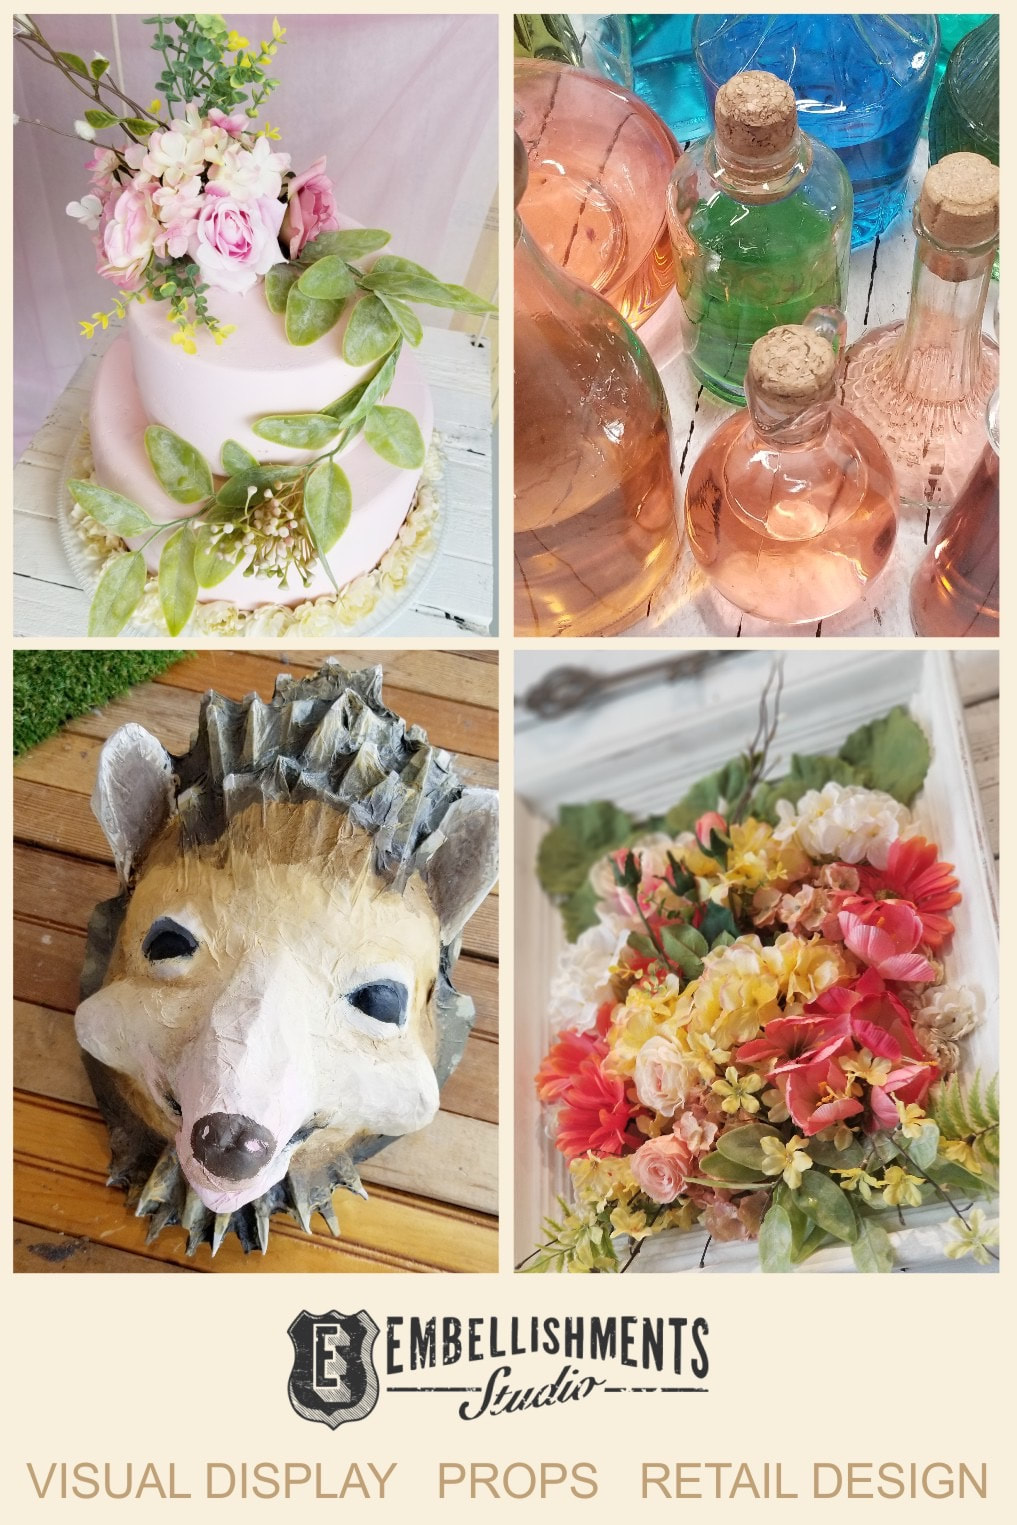 Wonderland Spring Garden Party Display featuring Eat Me, Drink Me props and paper mache animals masks by Aaron Christensen of Embellishments Studio